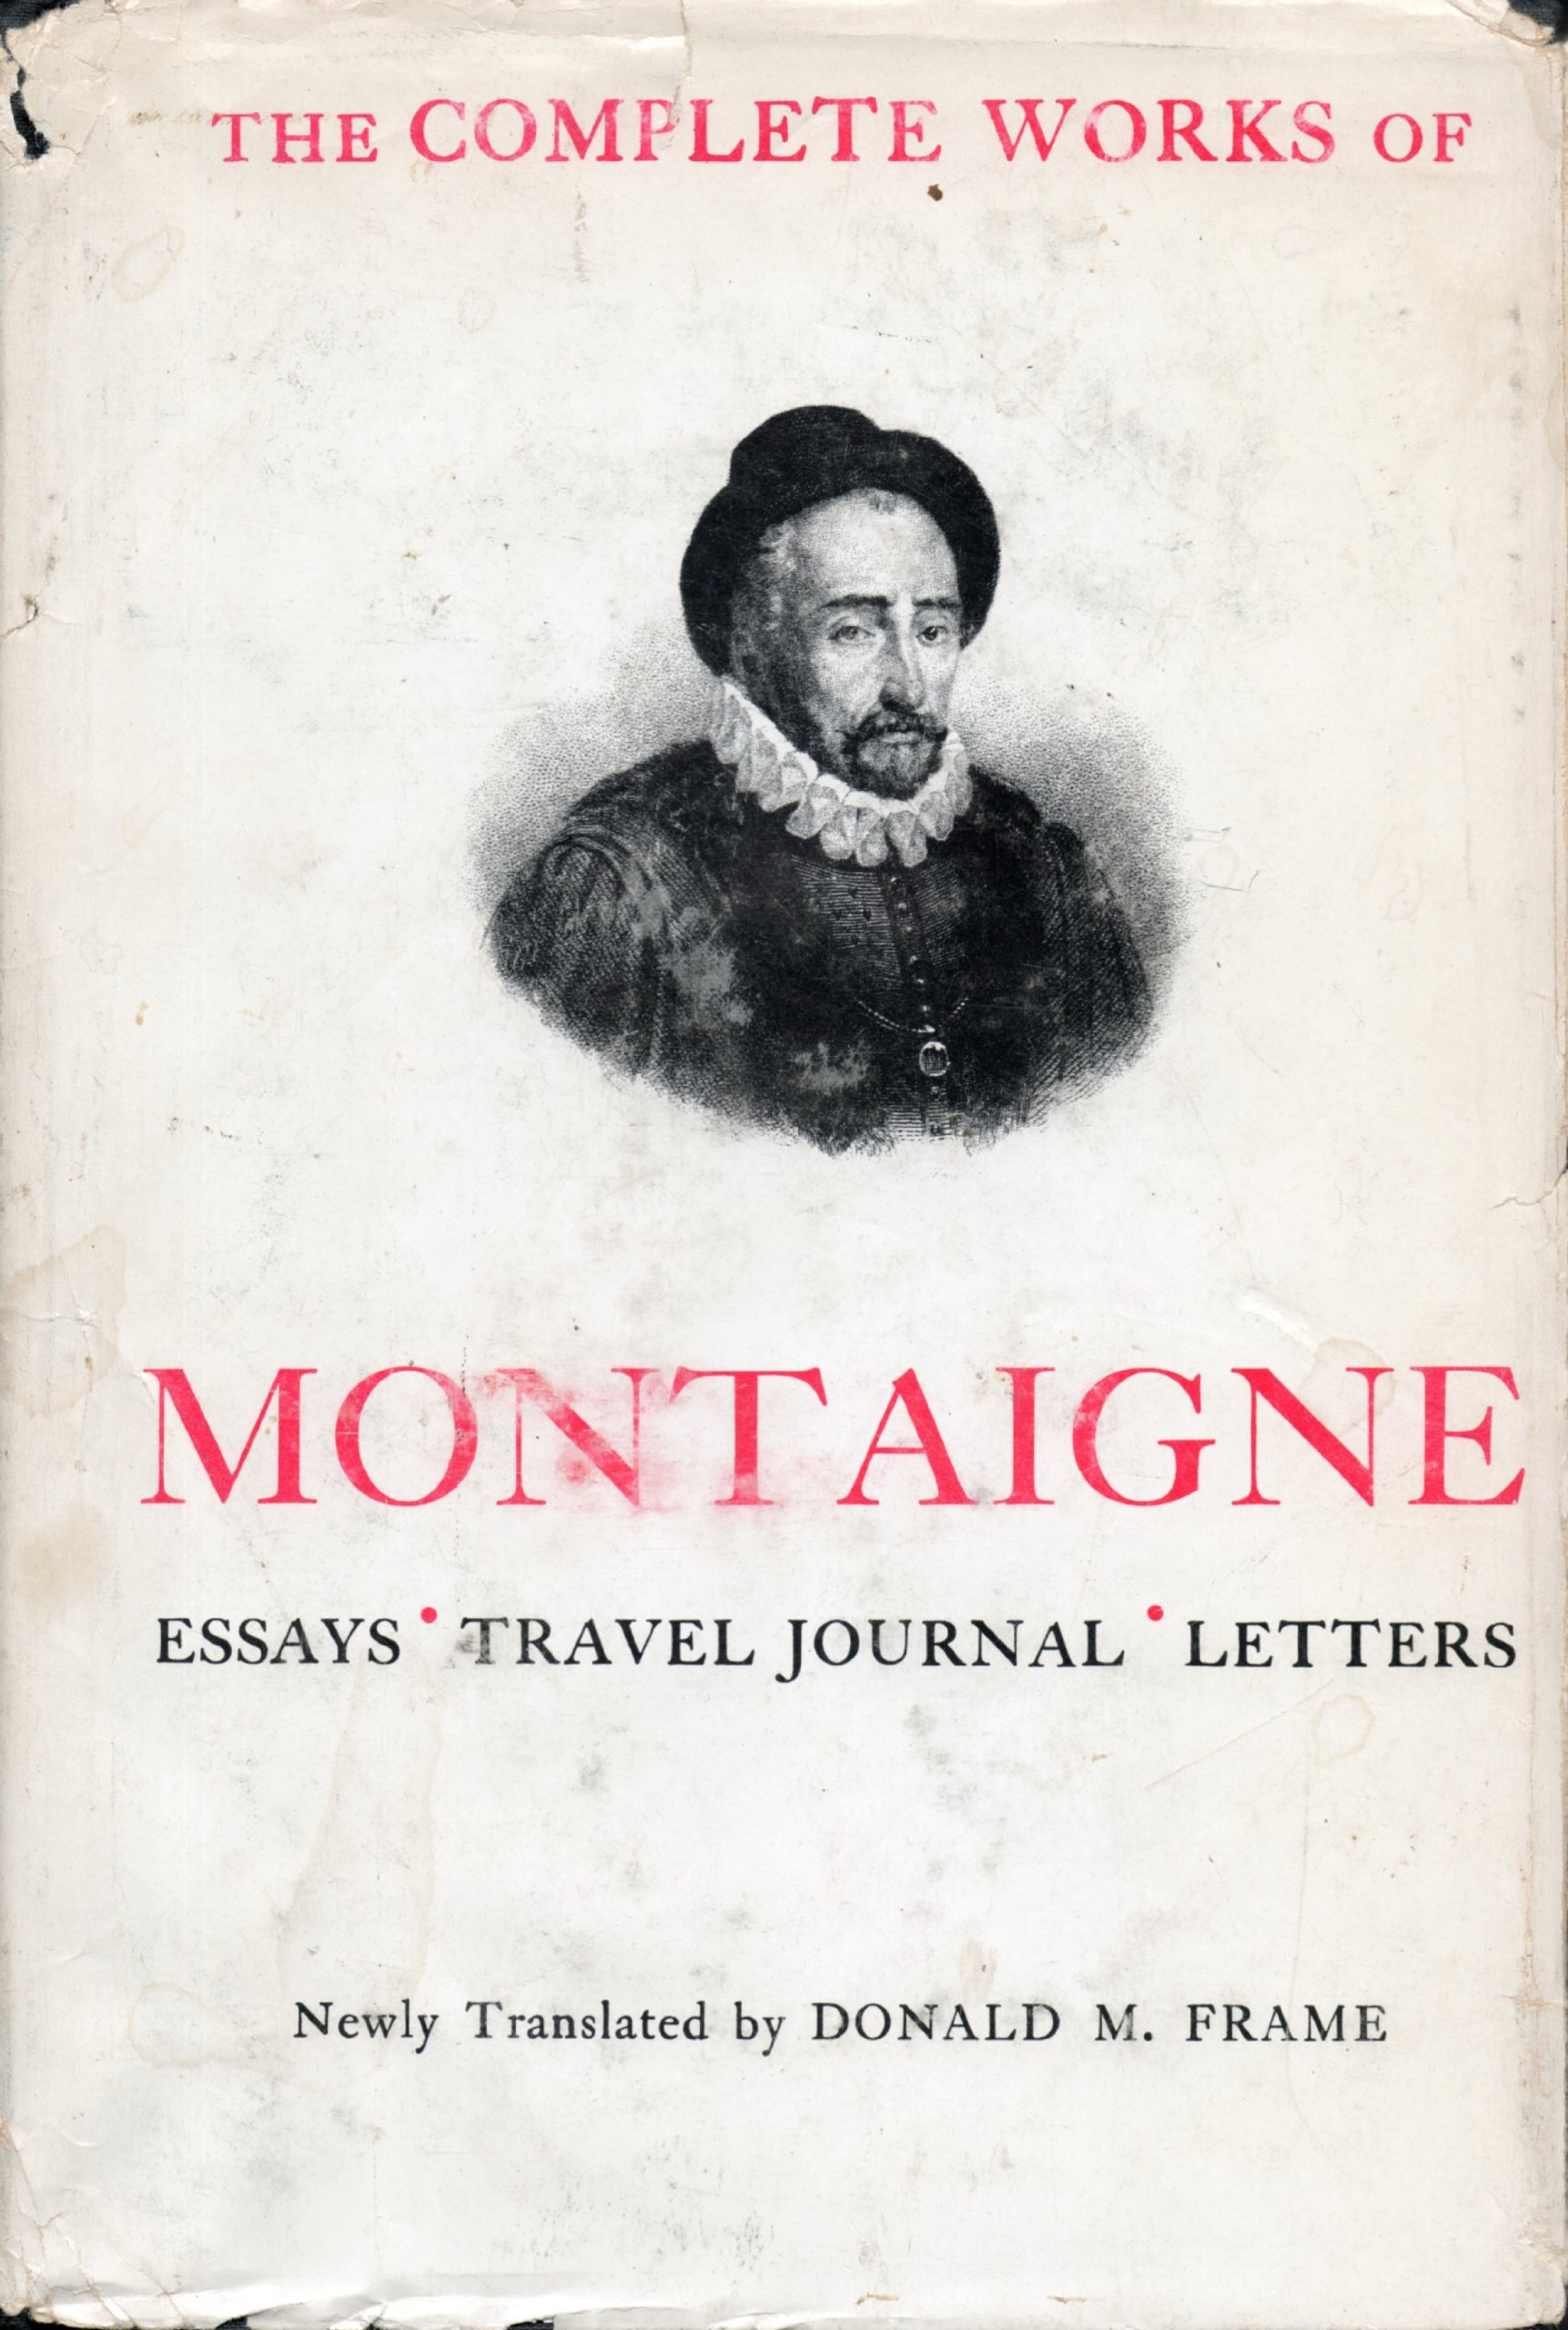 Complete works of montaigne essays travel journal letters michel